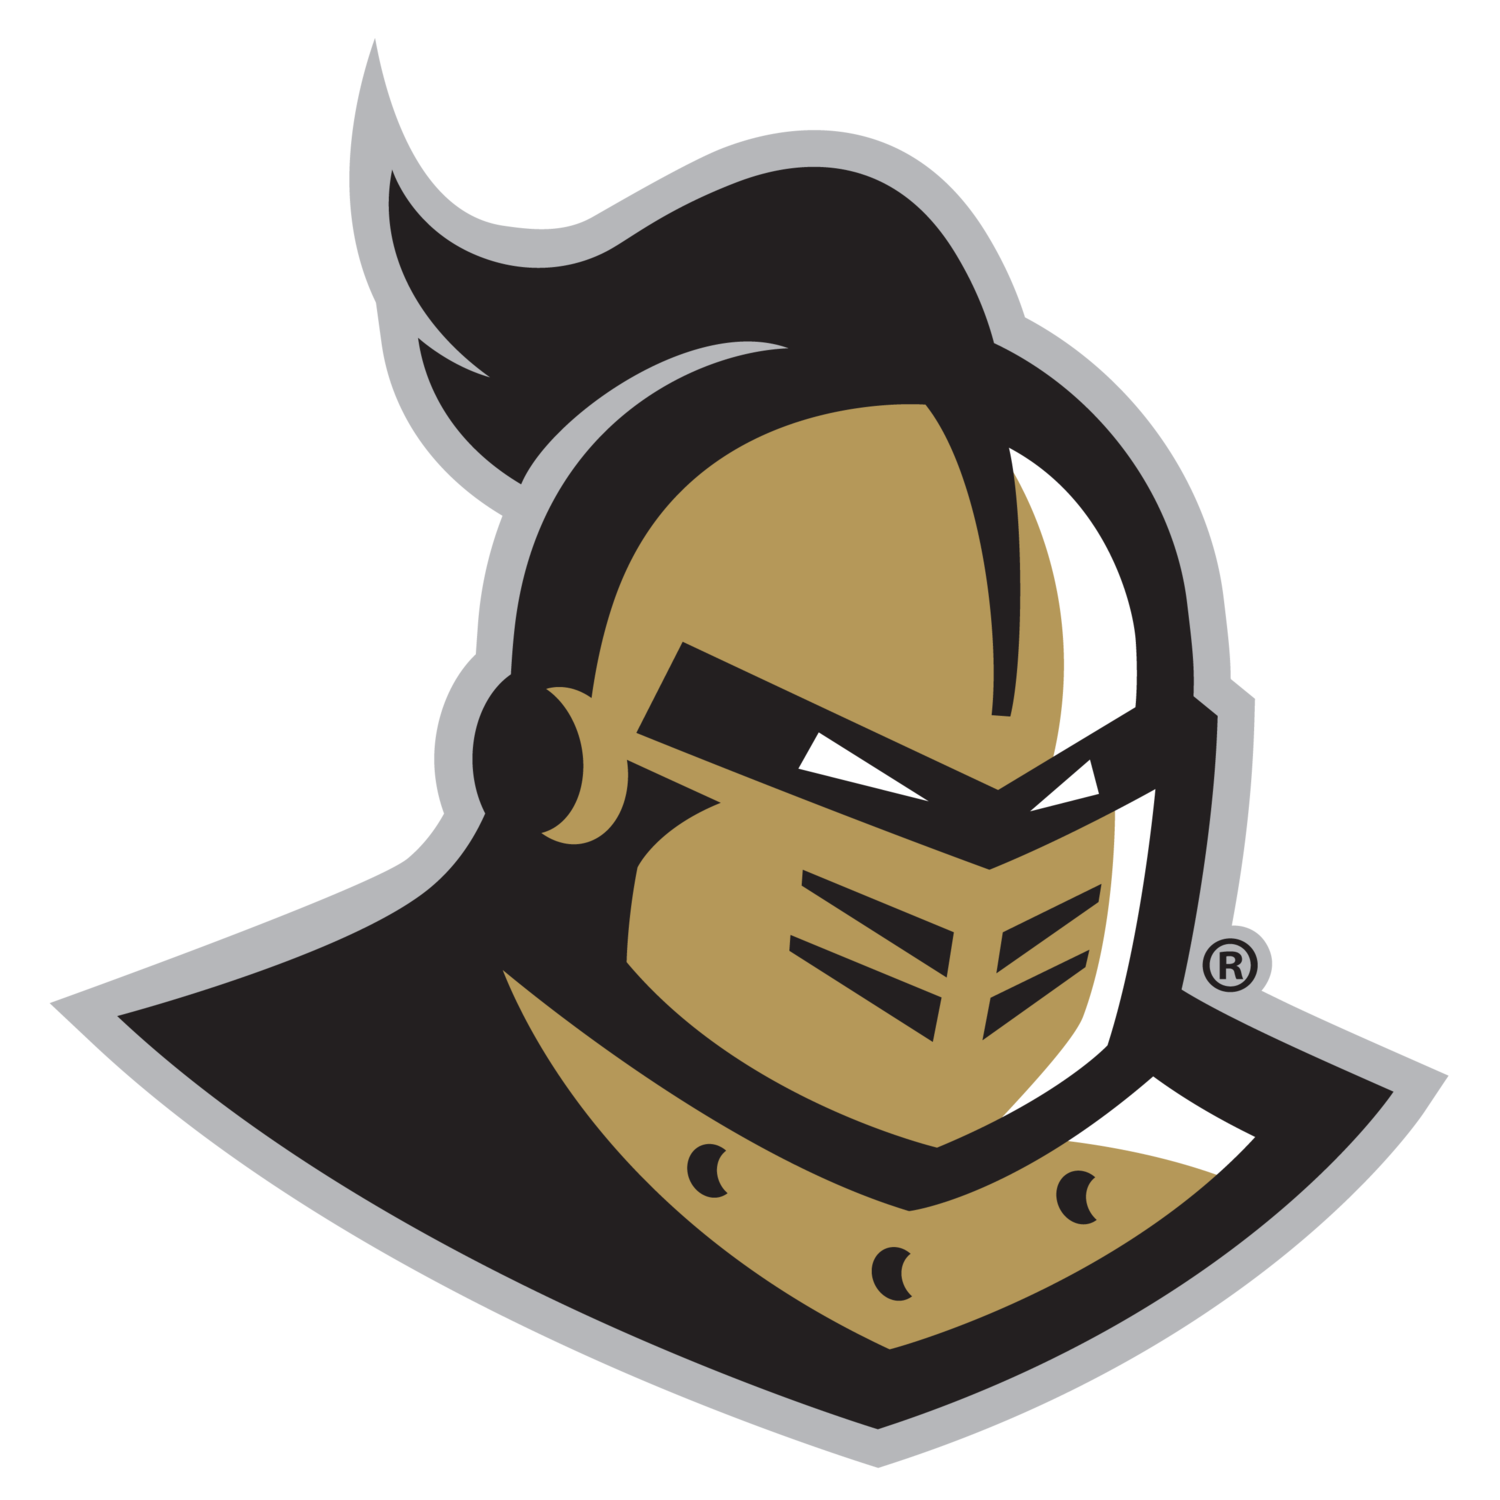 Logo google search design. Knights clipart outline knight